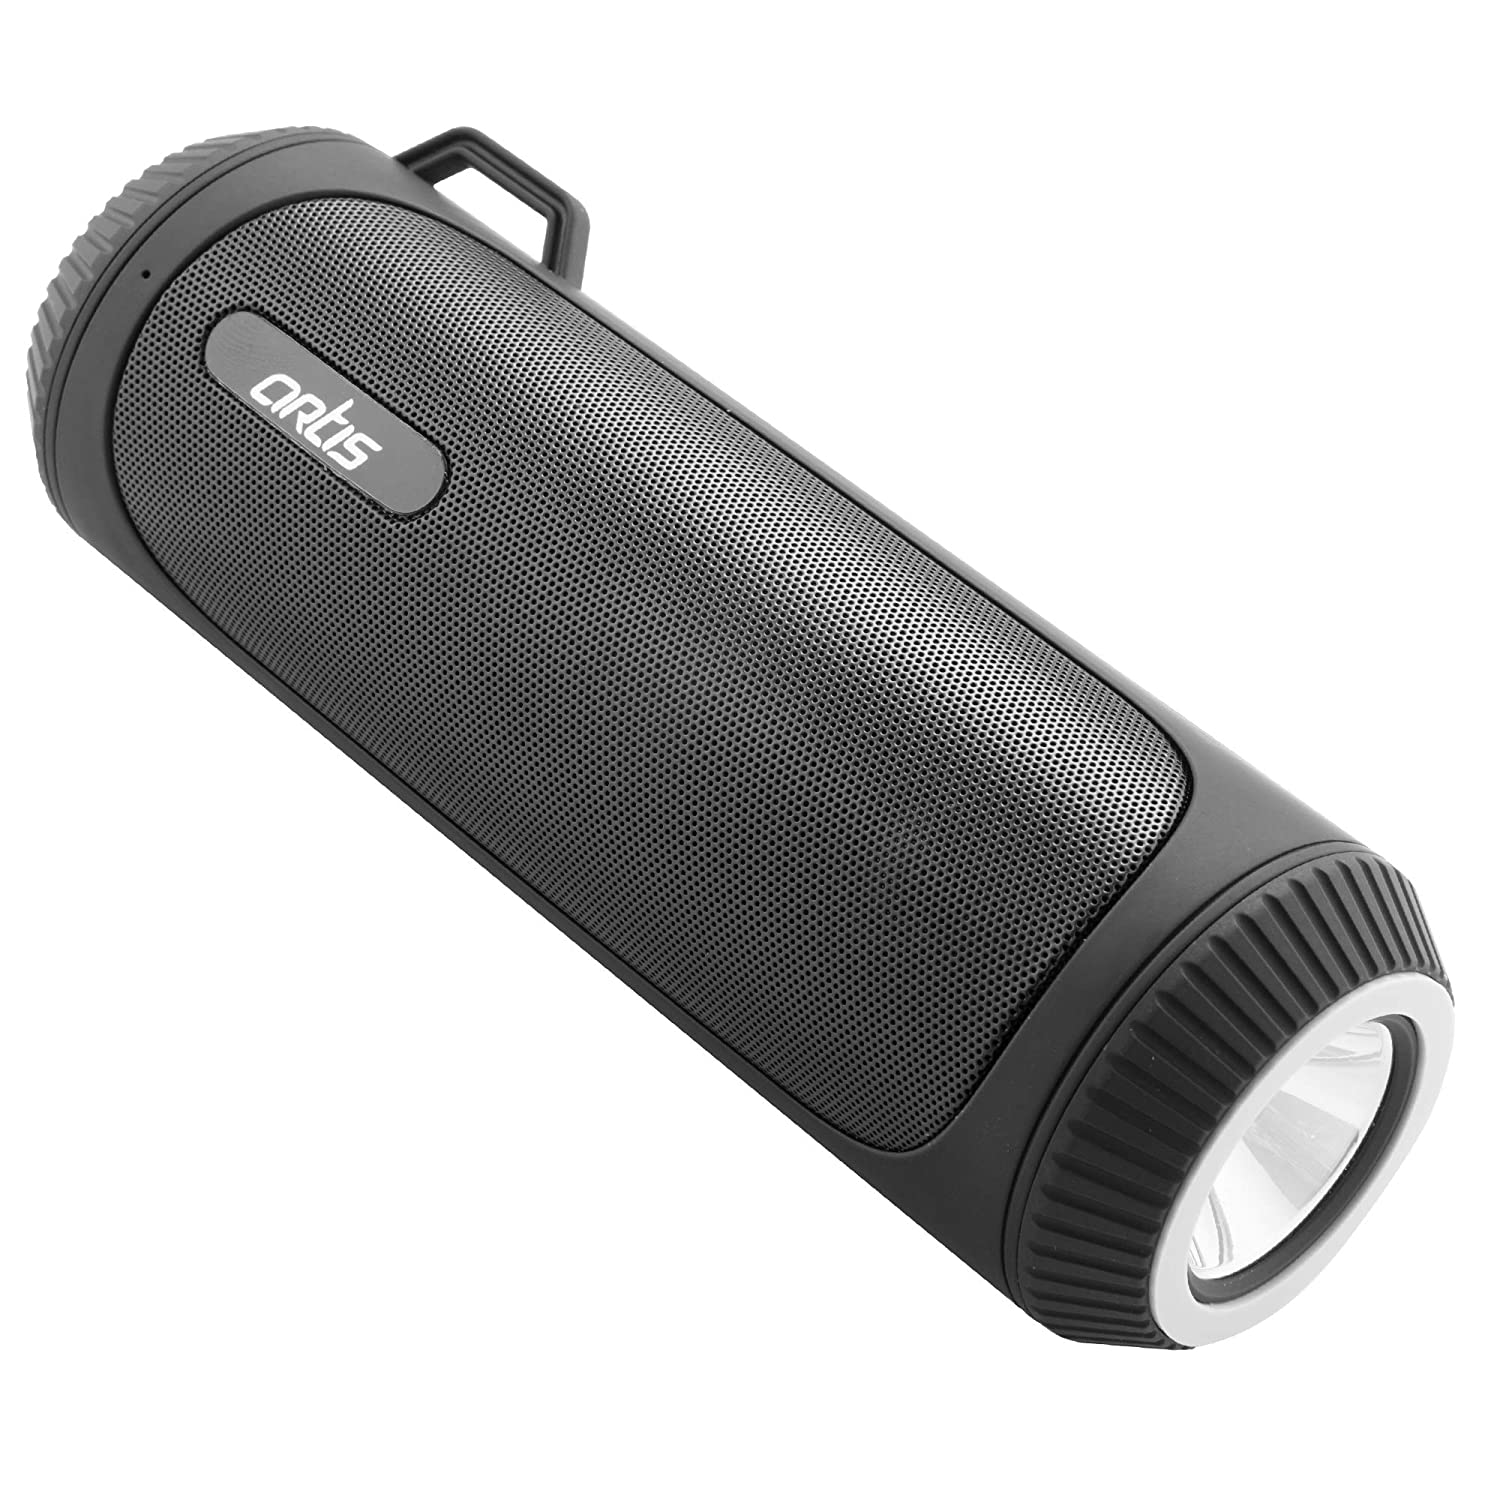 Artis BT22 Portable Wireless Bluetooth Speaker with LED Flash Light/FM/USB/TF Card Reader/AUX in & Hands Free Calling Mic.(Black)